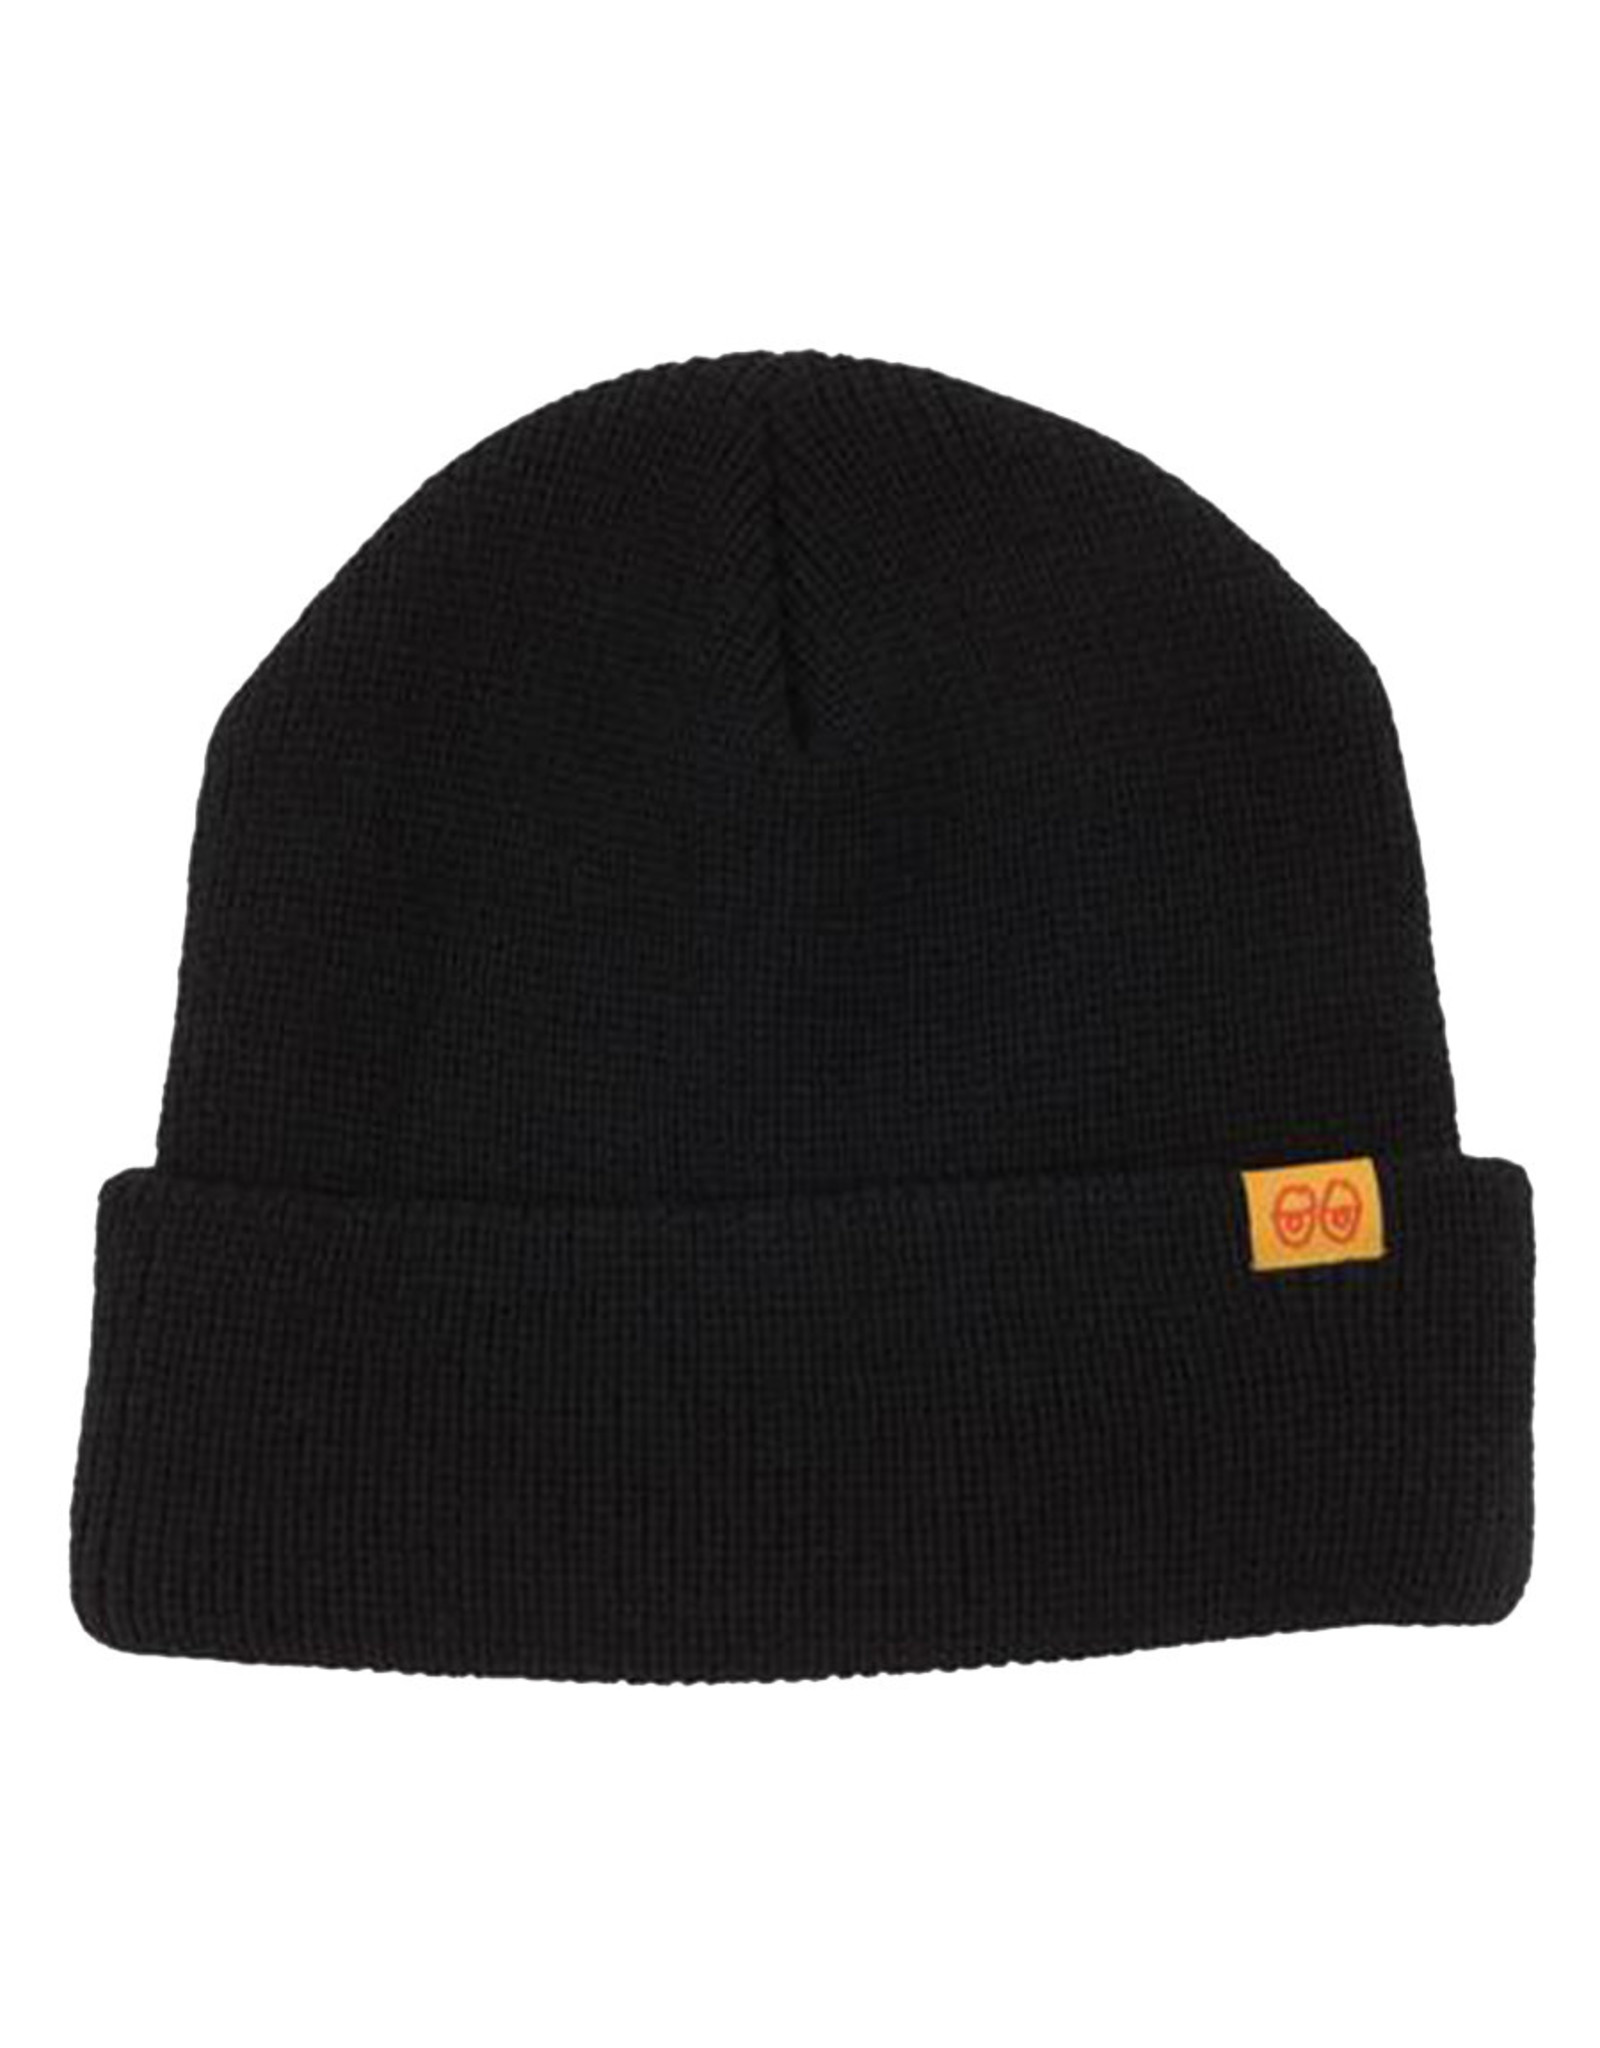 Krooked Krooked Beanie Eyes Clip Cuff (Black/Gold/Red)